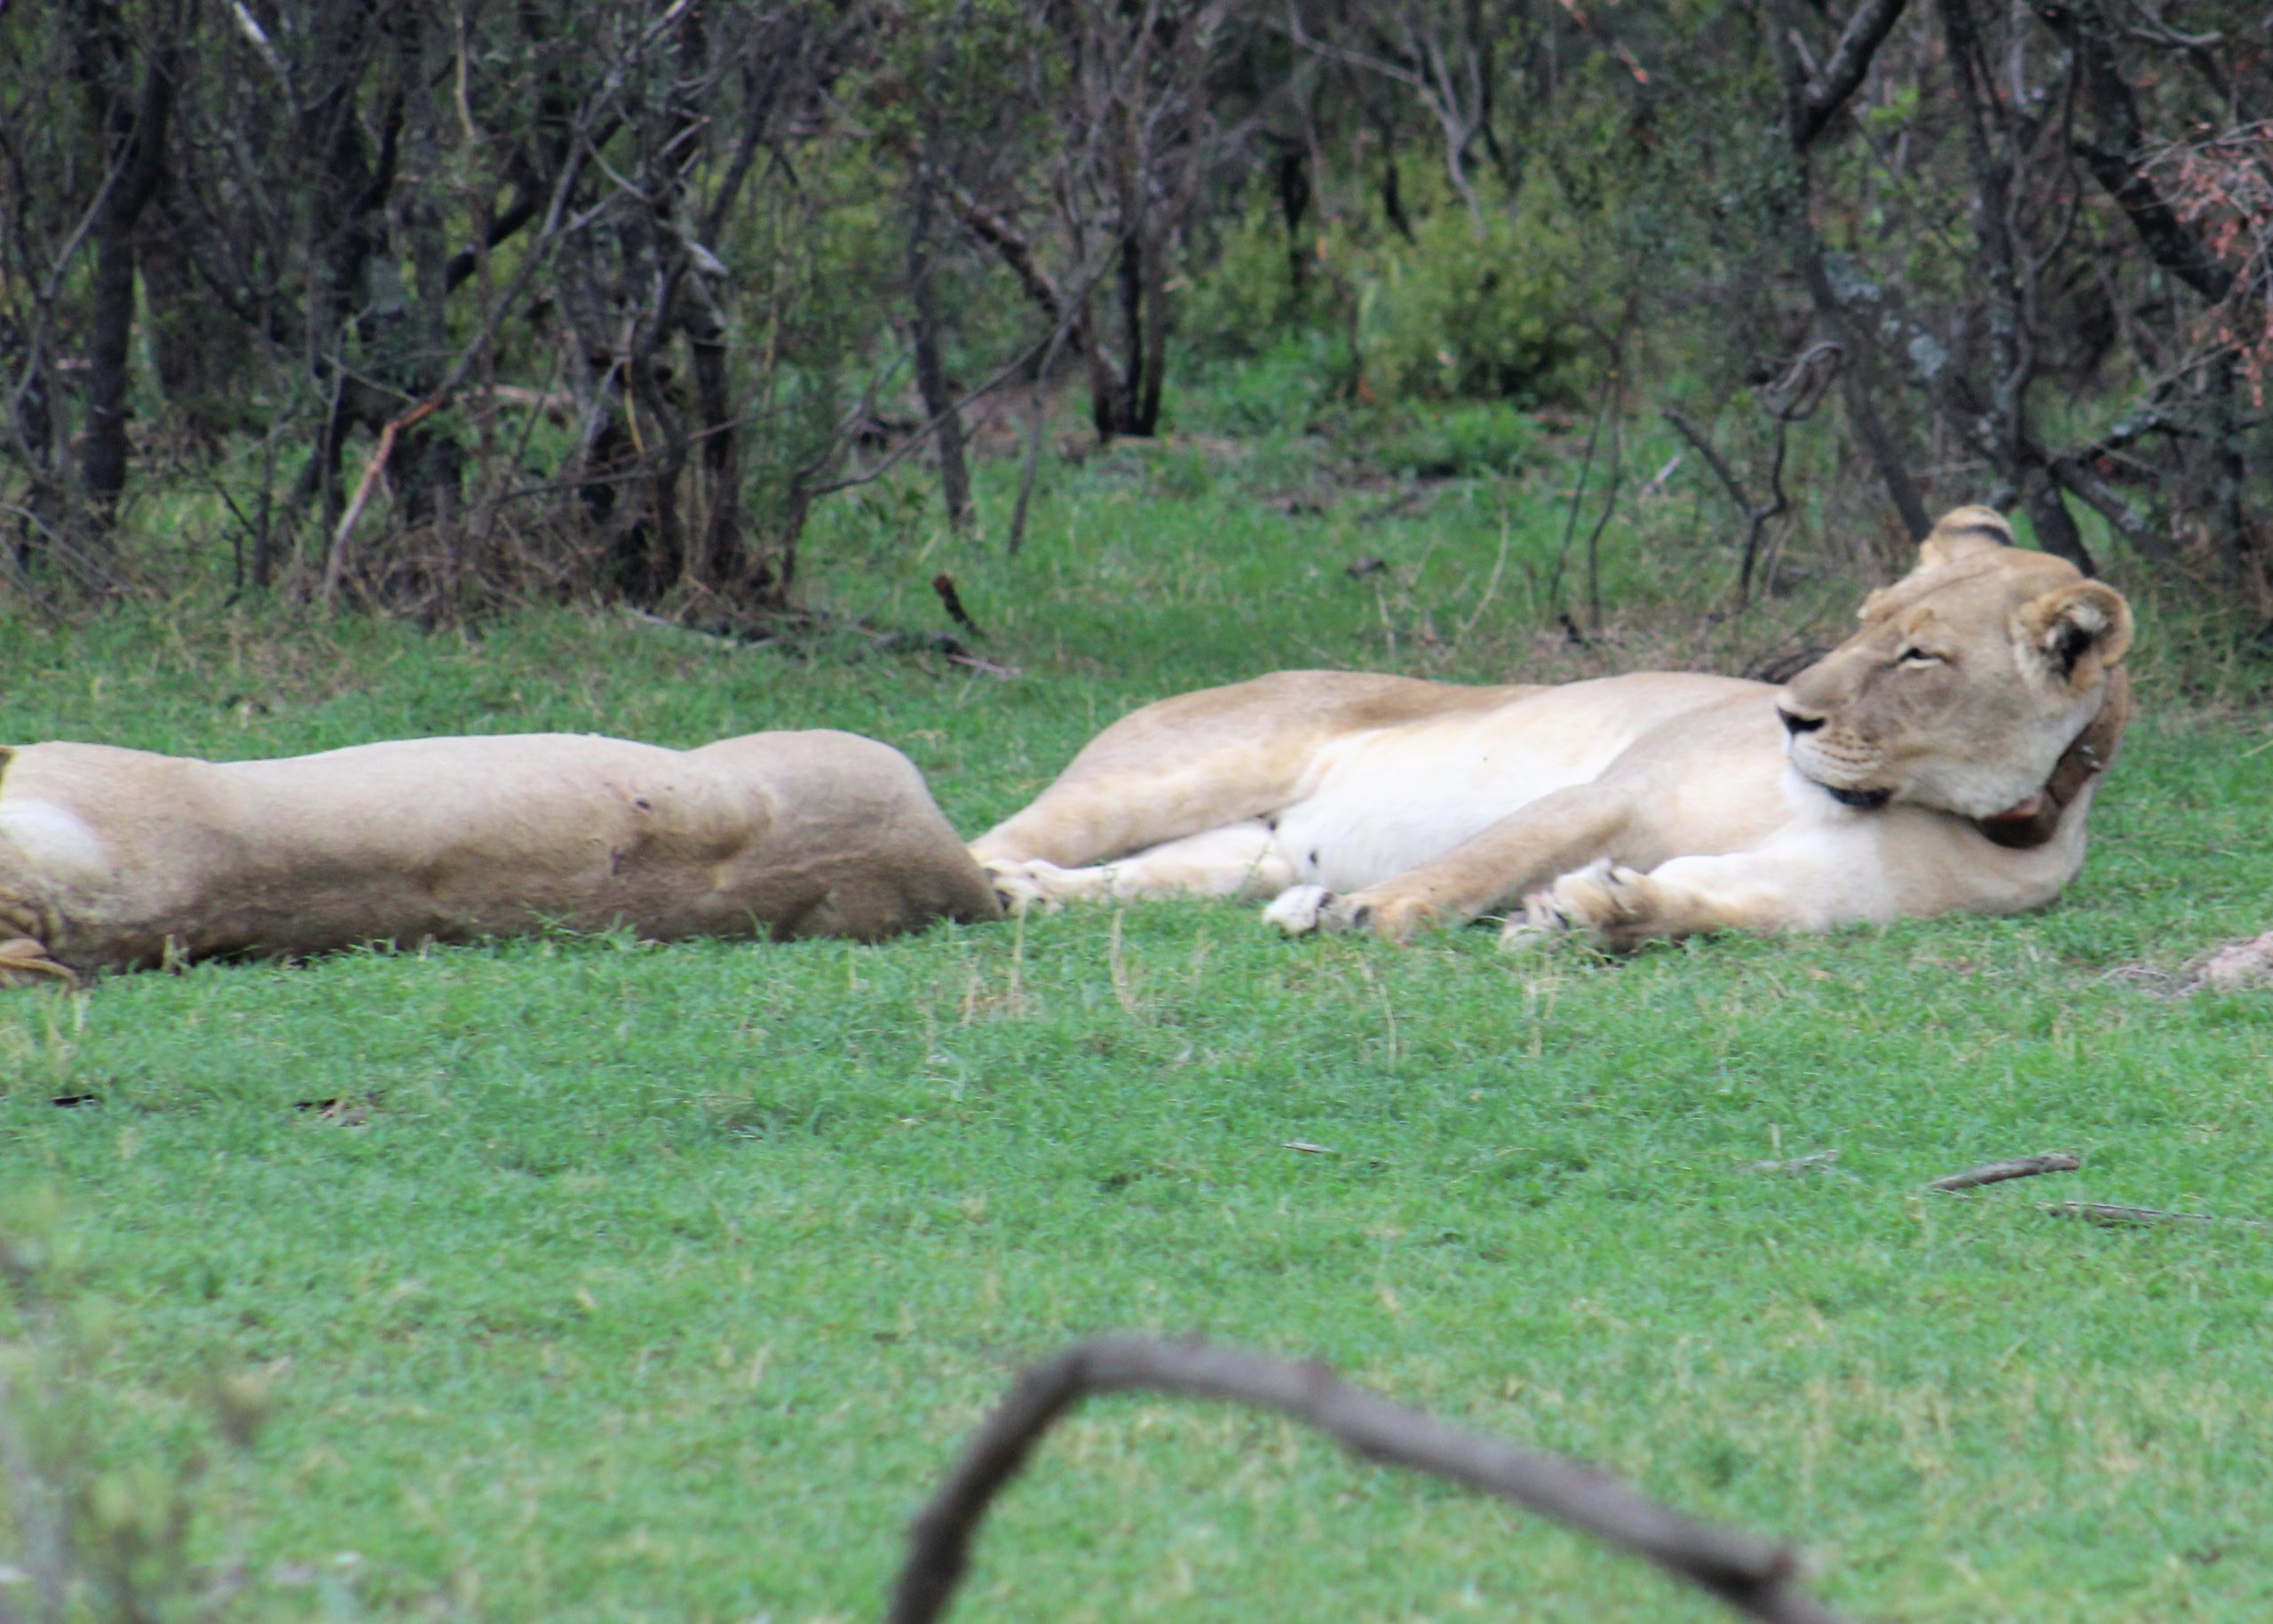 Lions on our game drive in South Africa